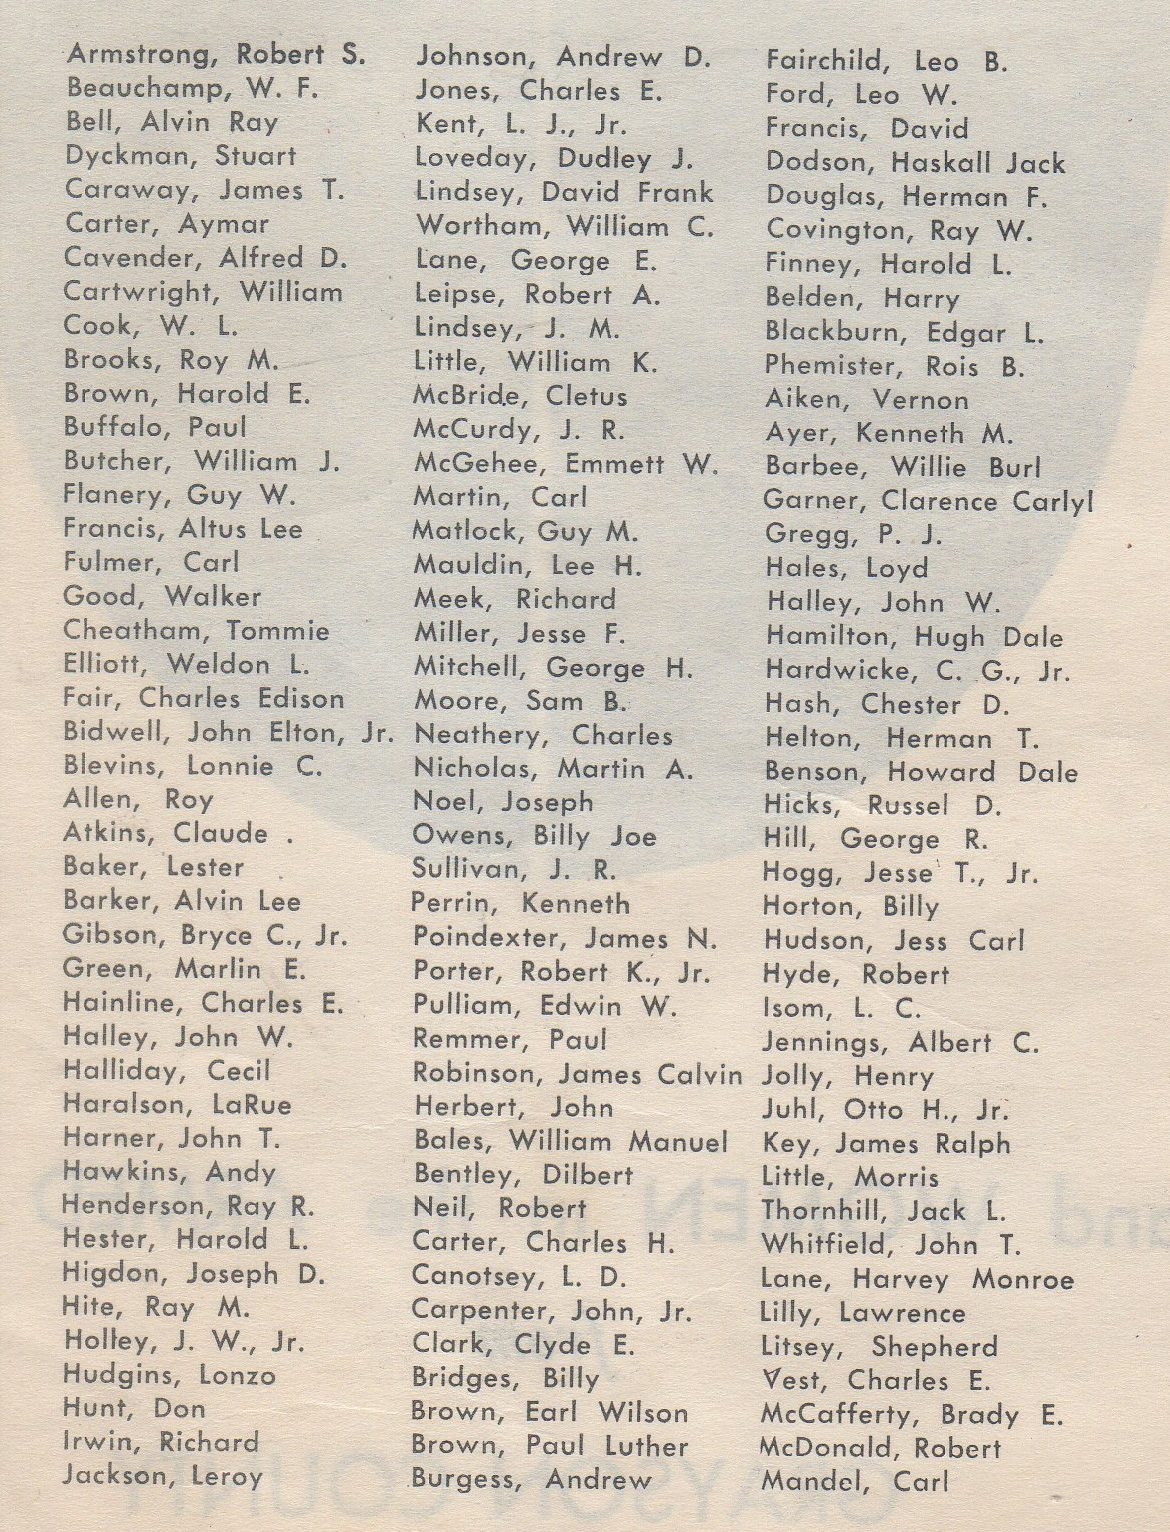 Men and women in the Armed Forces from Grayson County Texas Killed in Action